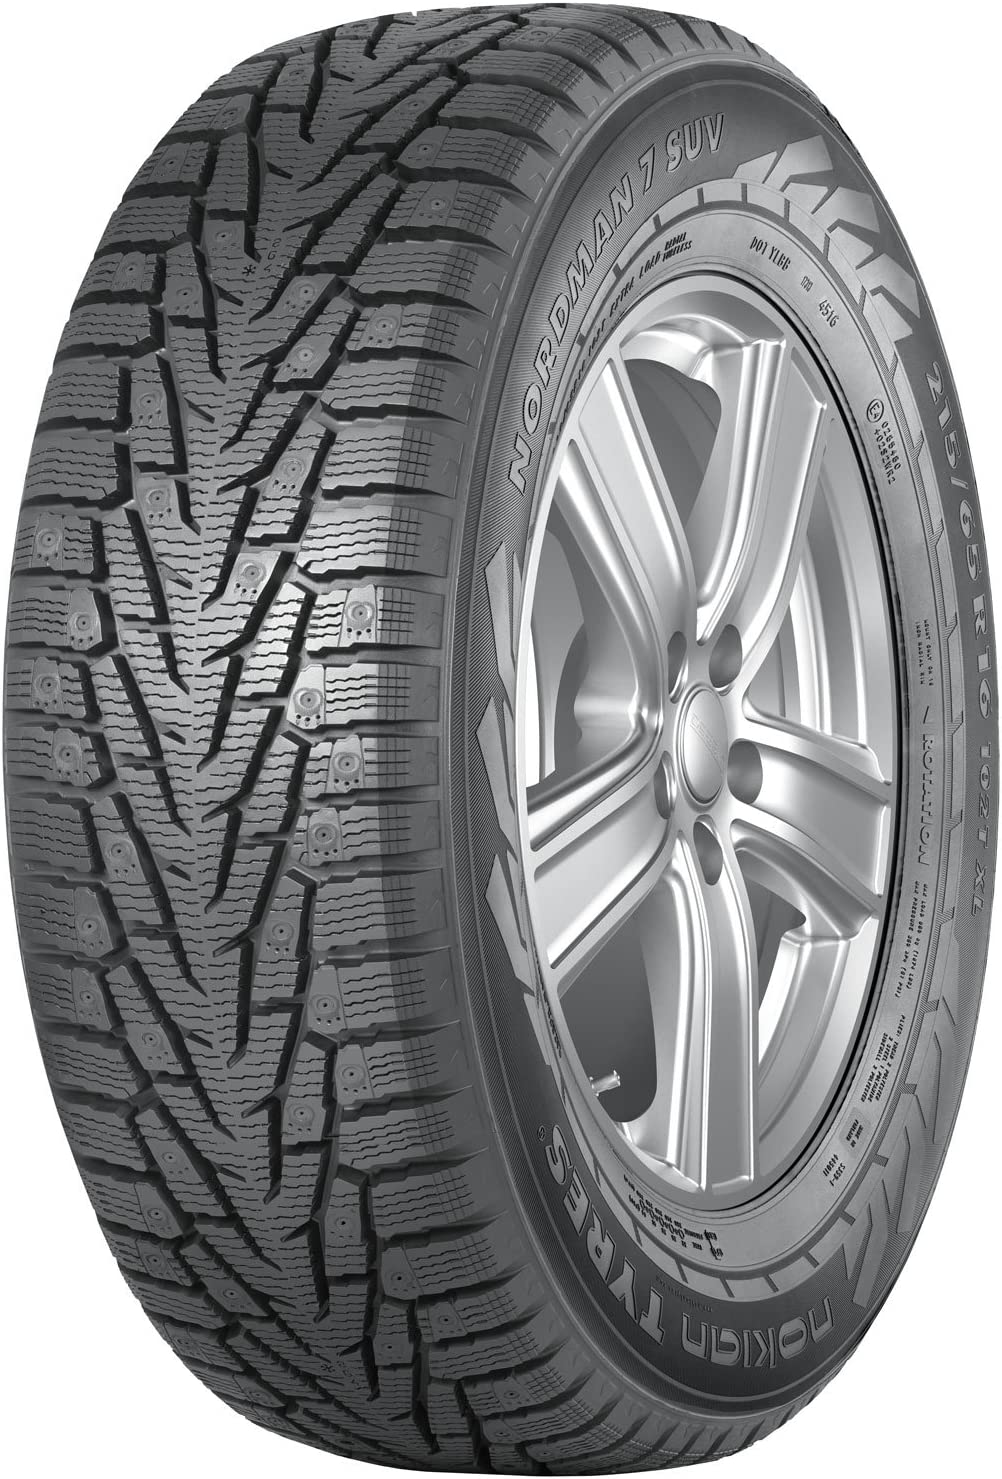 Nokian NORDMAN 7 SUV Large-scale sale Performance-Winter 265 Tire 5 ☆ very popular - 60R18 Radial